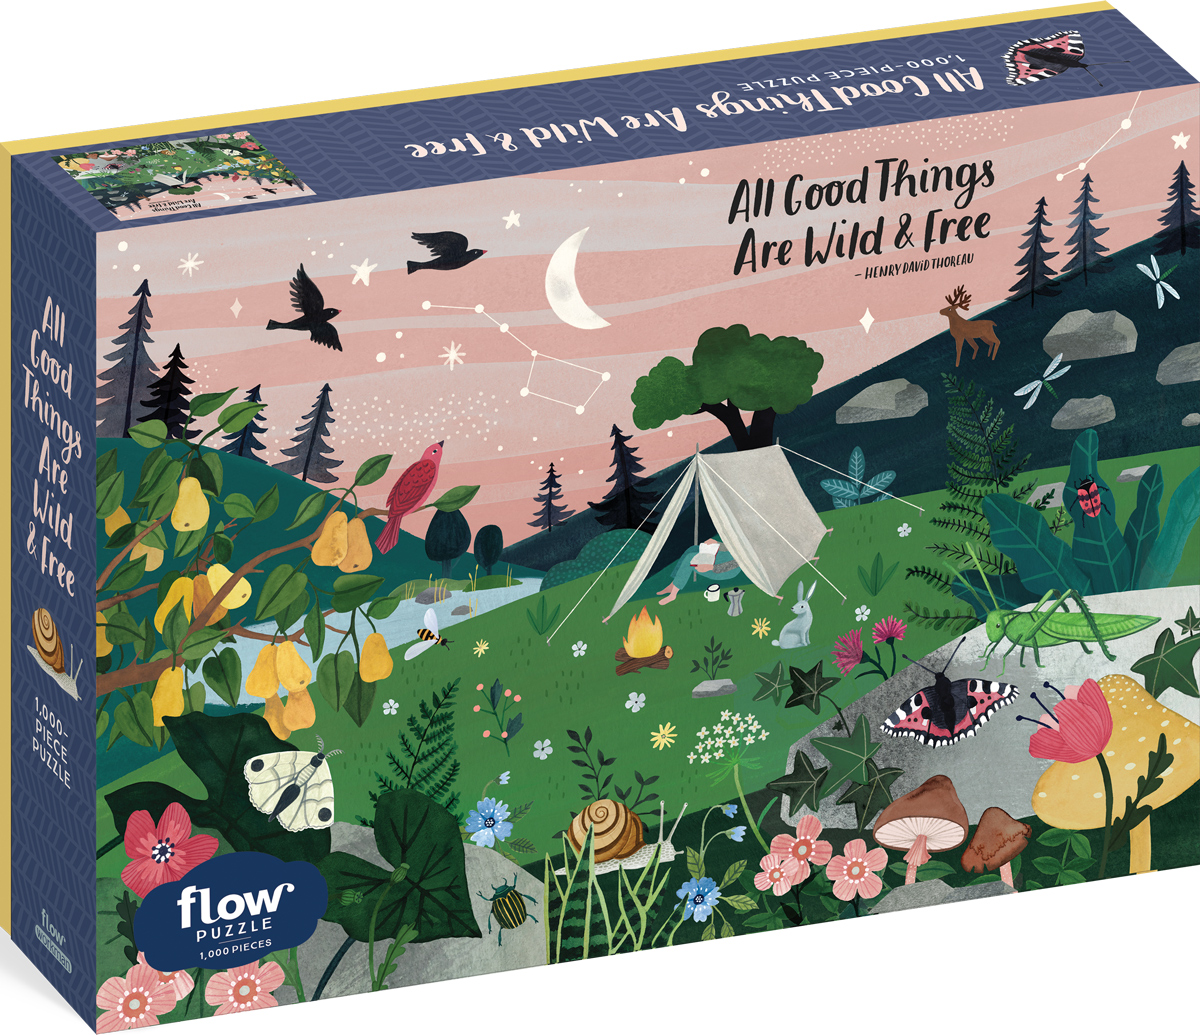 All Good Things Are Wild & Free Movies / Books / TV Jigsaw Puzzle